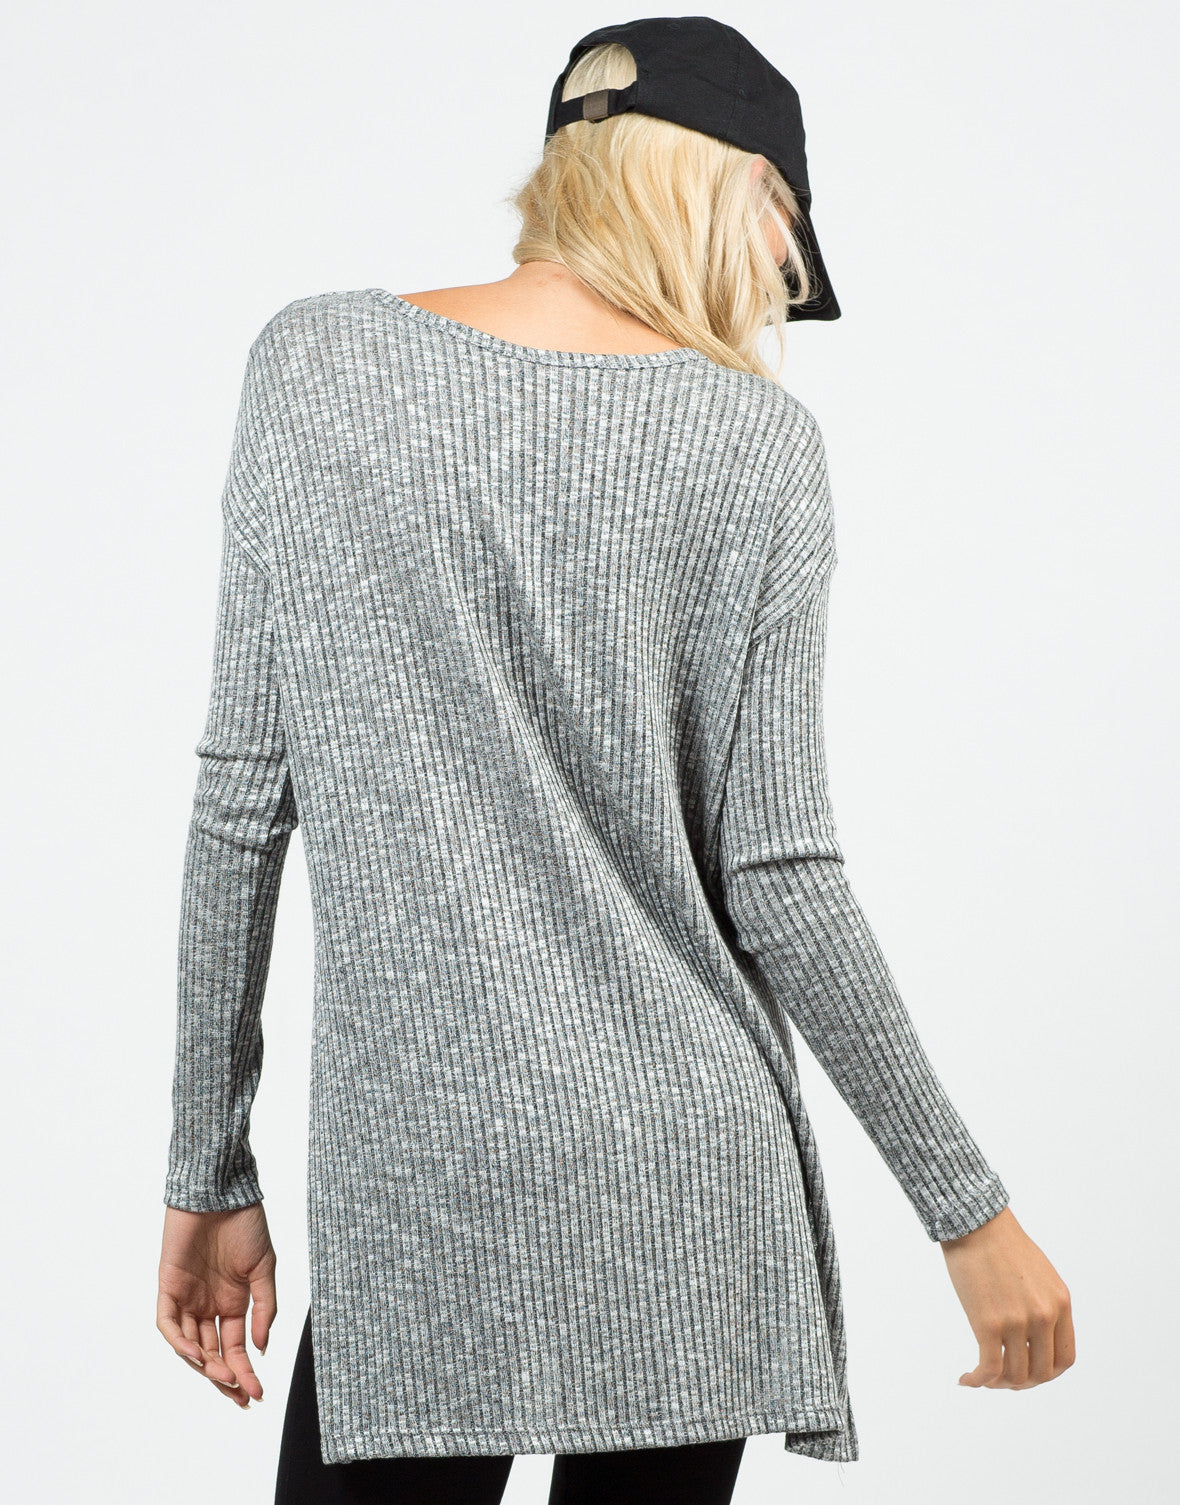 Back View of Ribbed Tunic Top